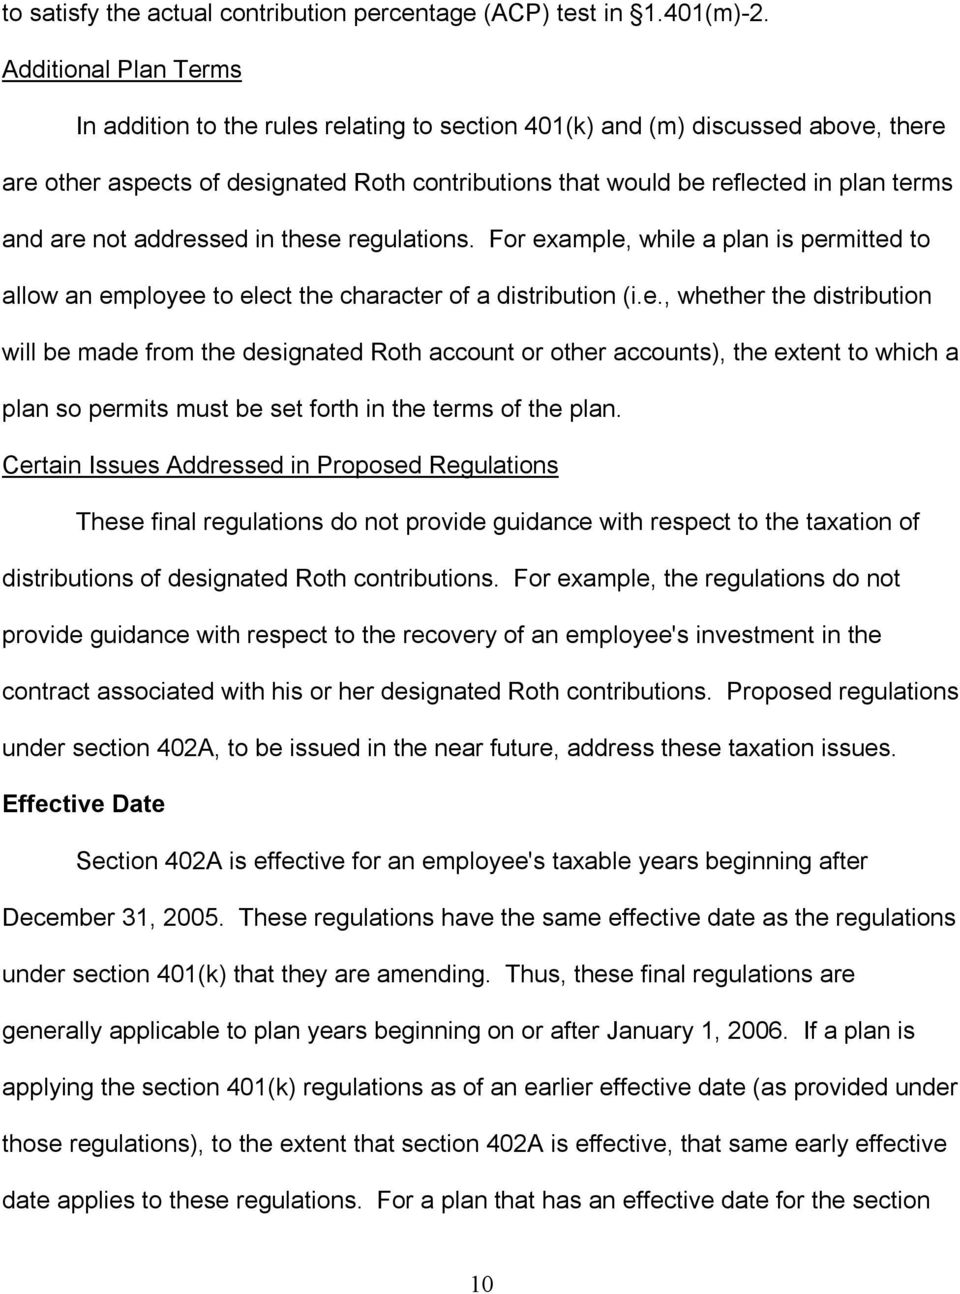 are not addressed in these regulations. For example, while a plan is permitted to allow an employee to elect the character of a distribution (i.e., whether the distribution will be made from the designated Roth account or other accounts), the extent to which a plan so permits must be set forth in the terms of the plan.